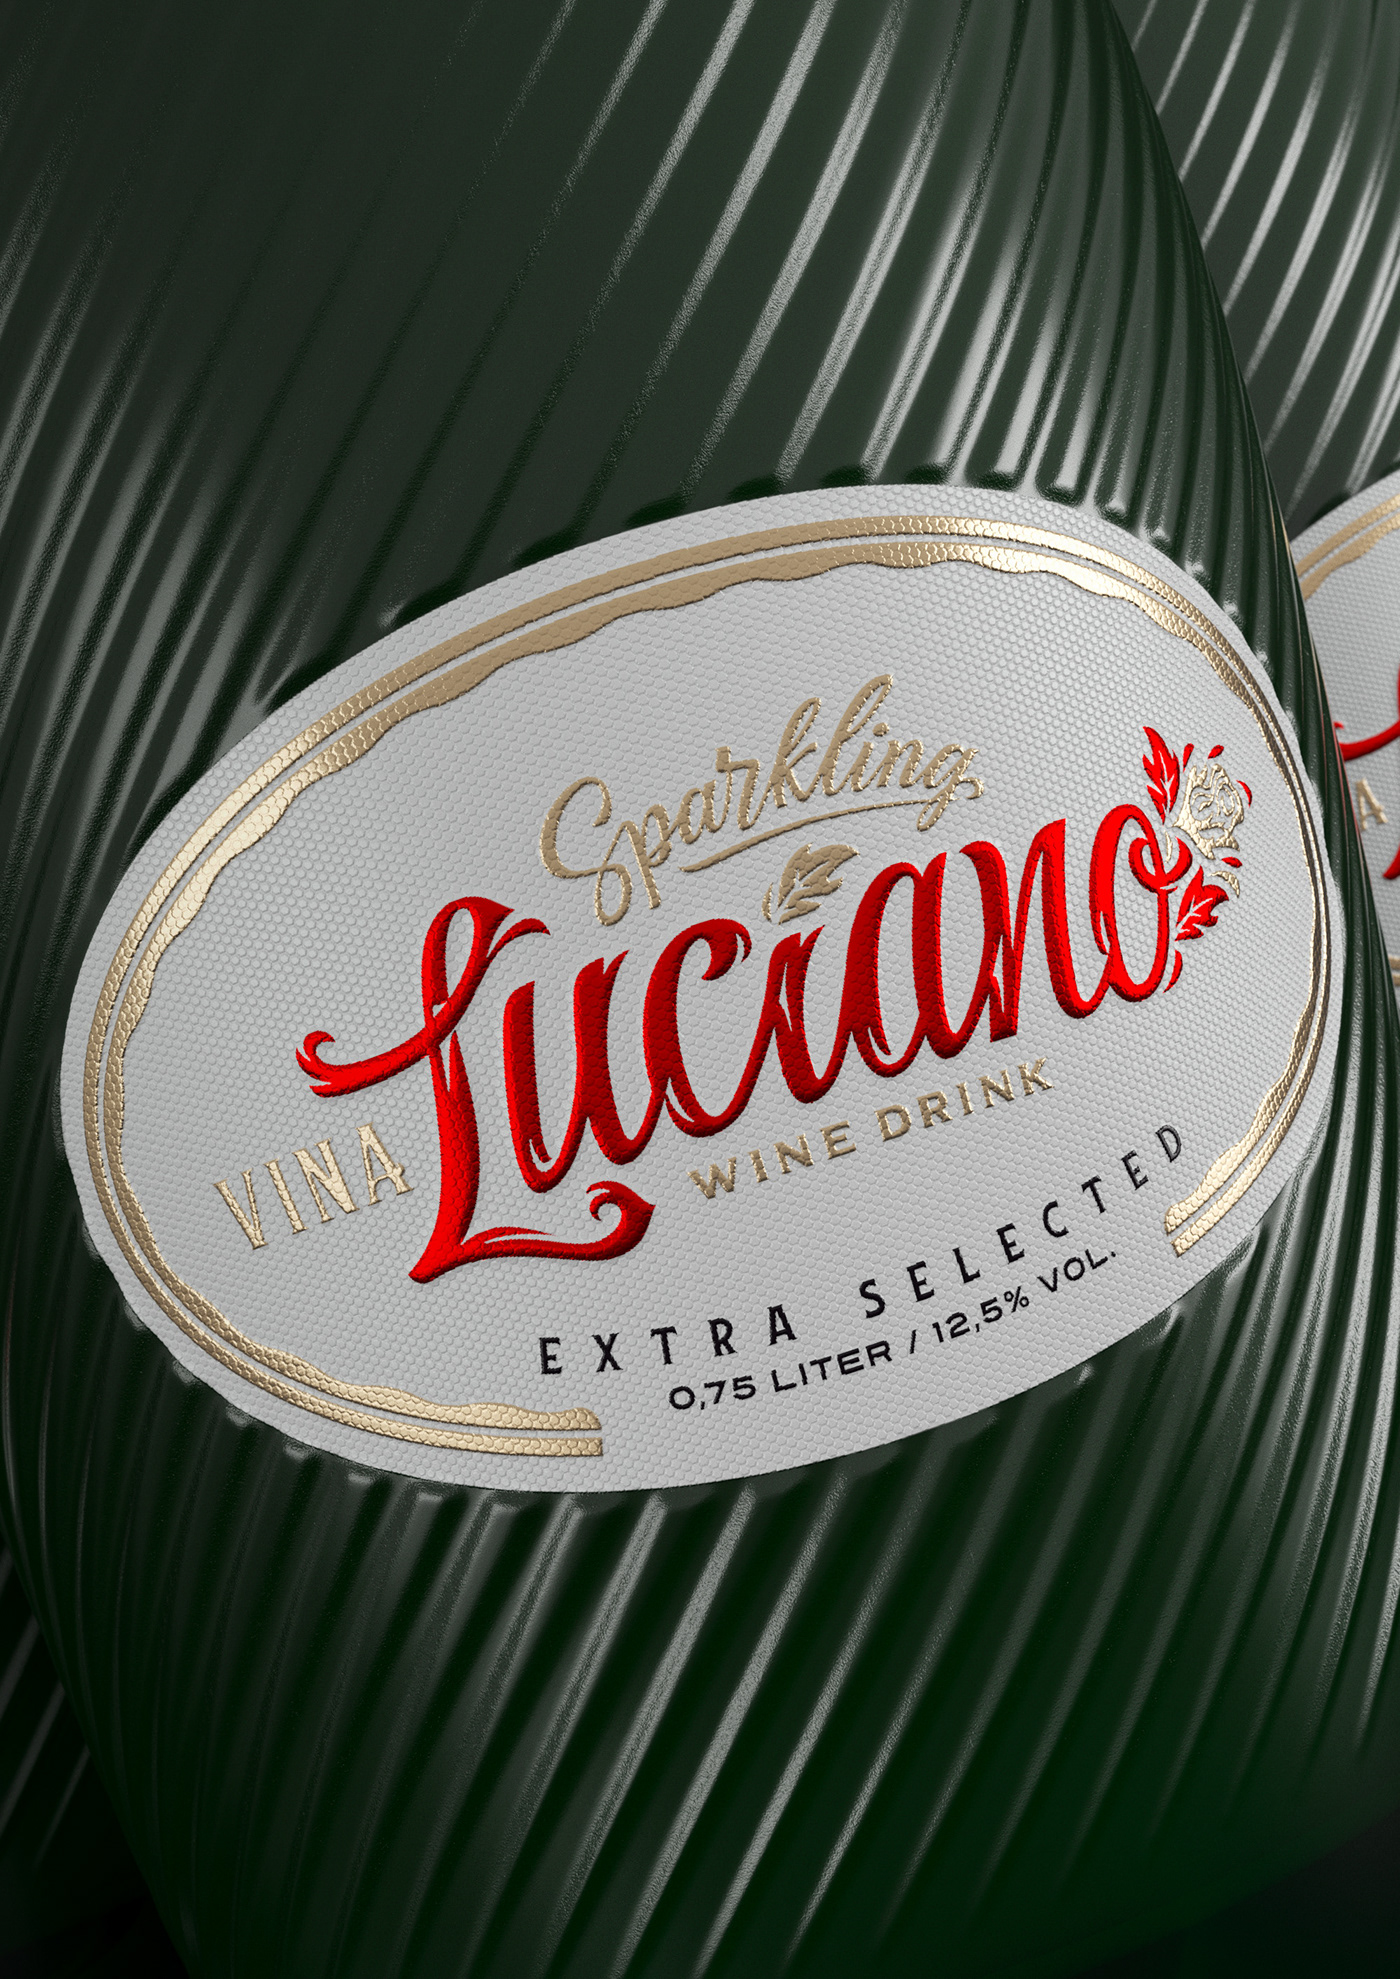 luciano wine drink alcohol Viña sparkling extra selected